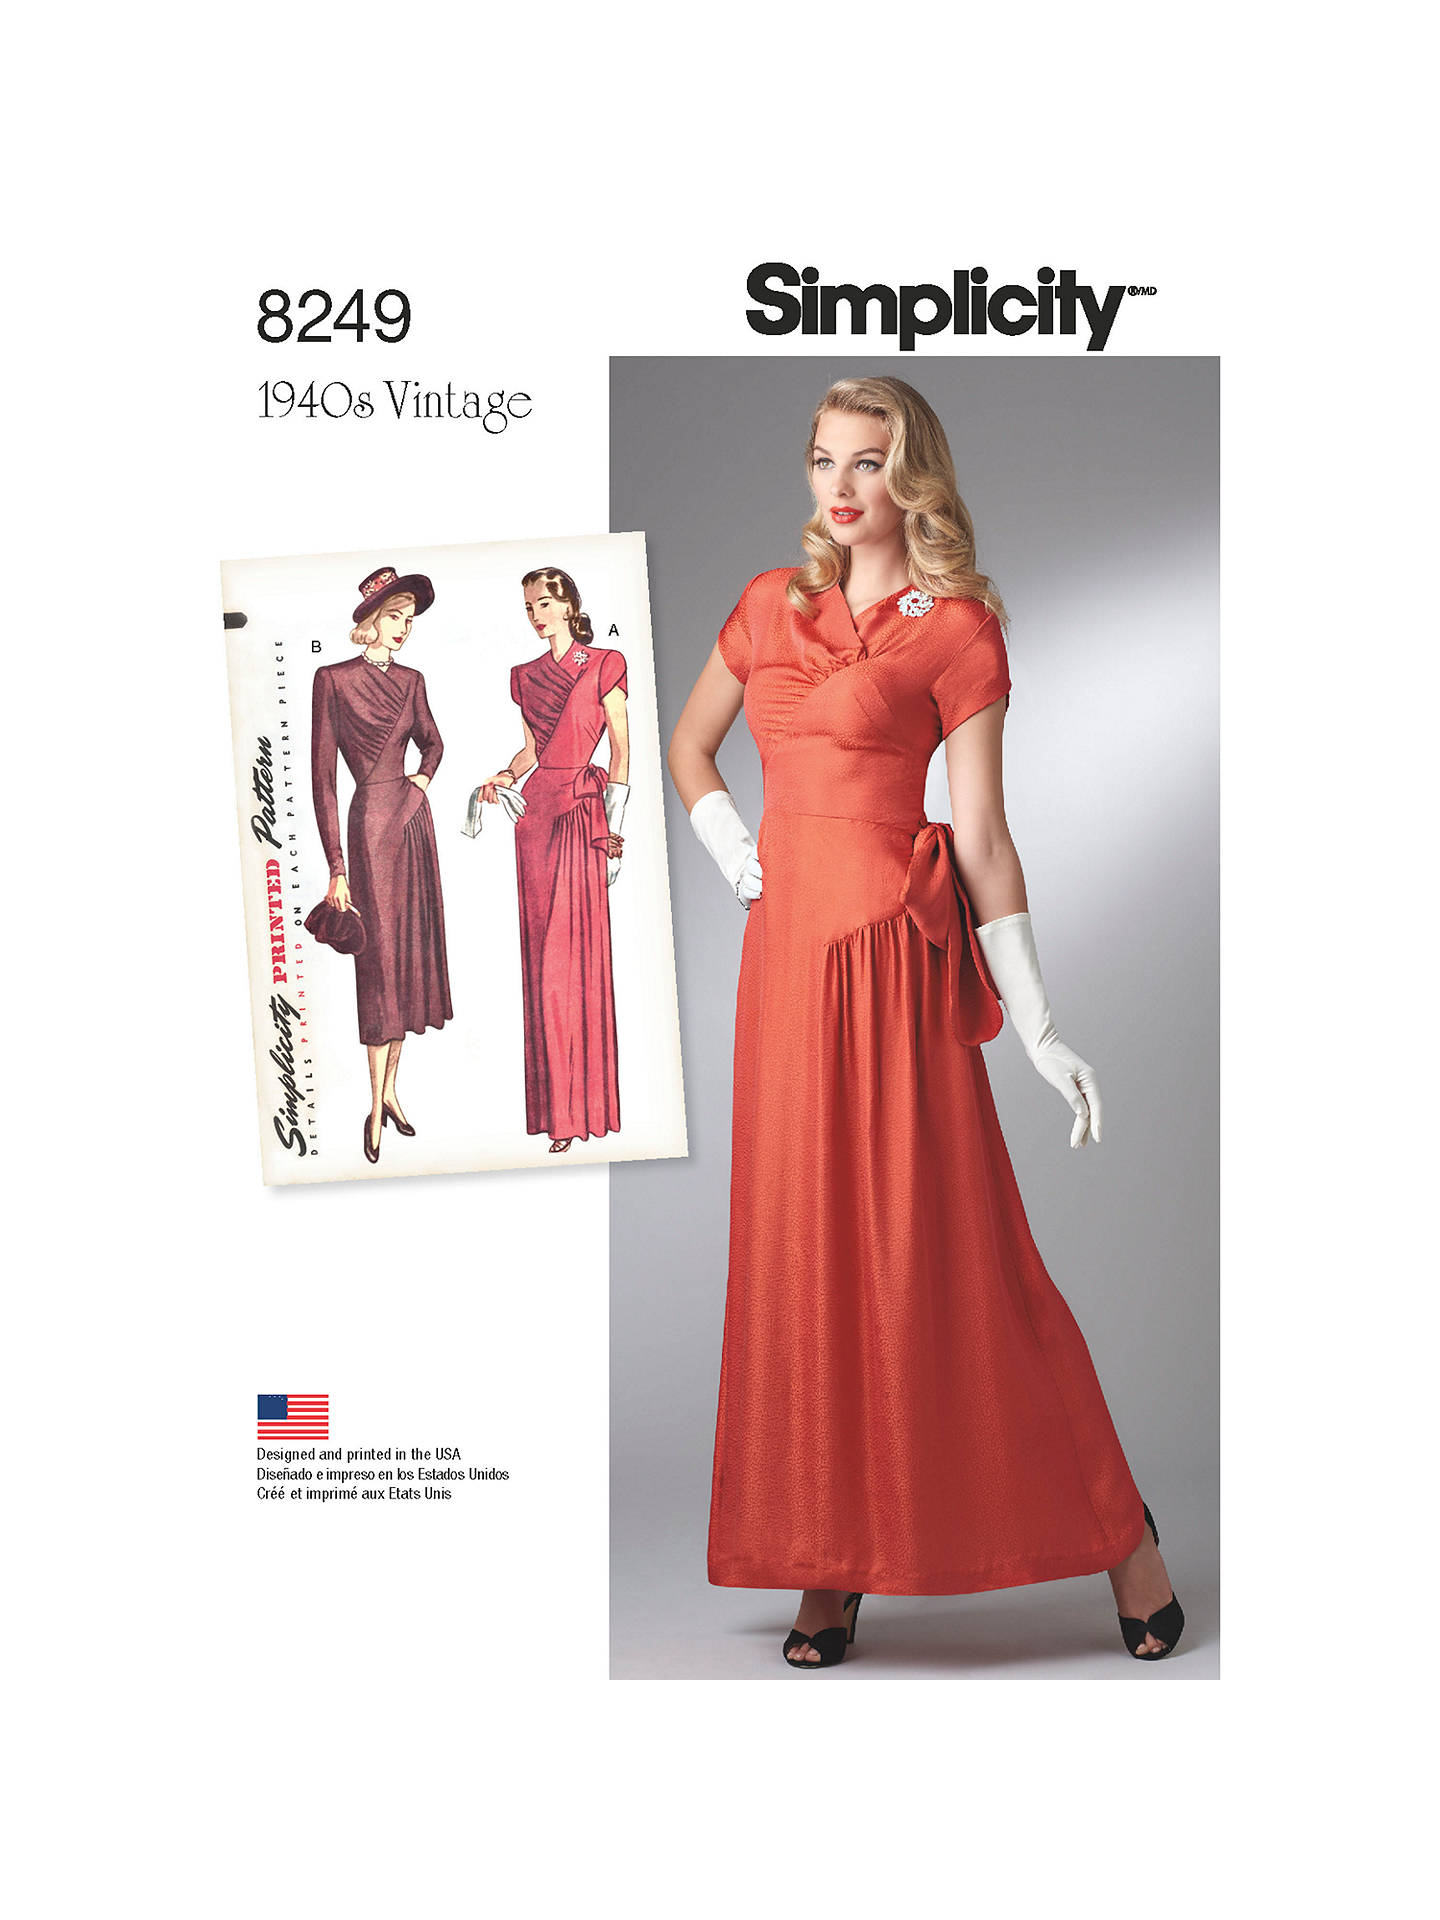 75982fb841956 Buy Simplicity Vintage Women's 1940s Gown and Dress Sewing Pattern, 8249,  H5 Online at ...